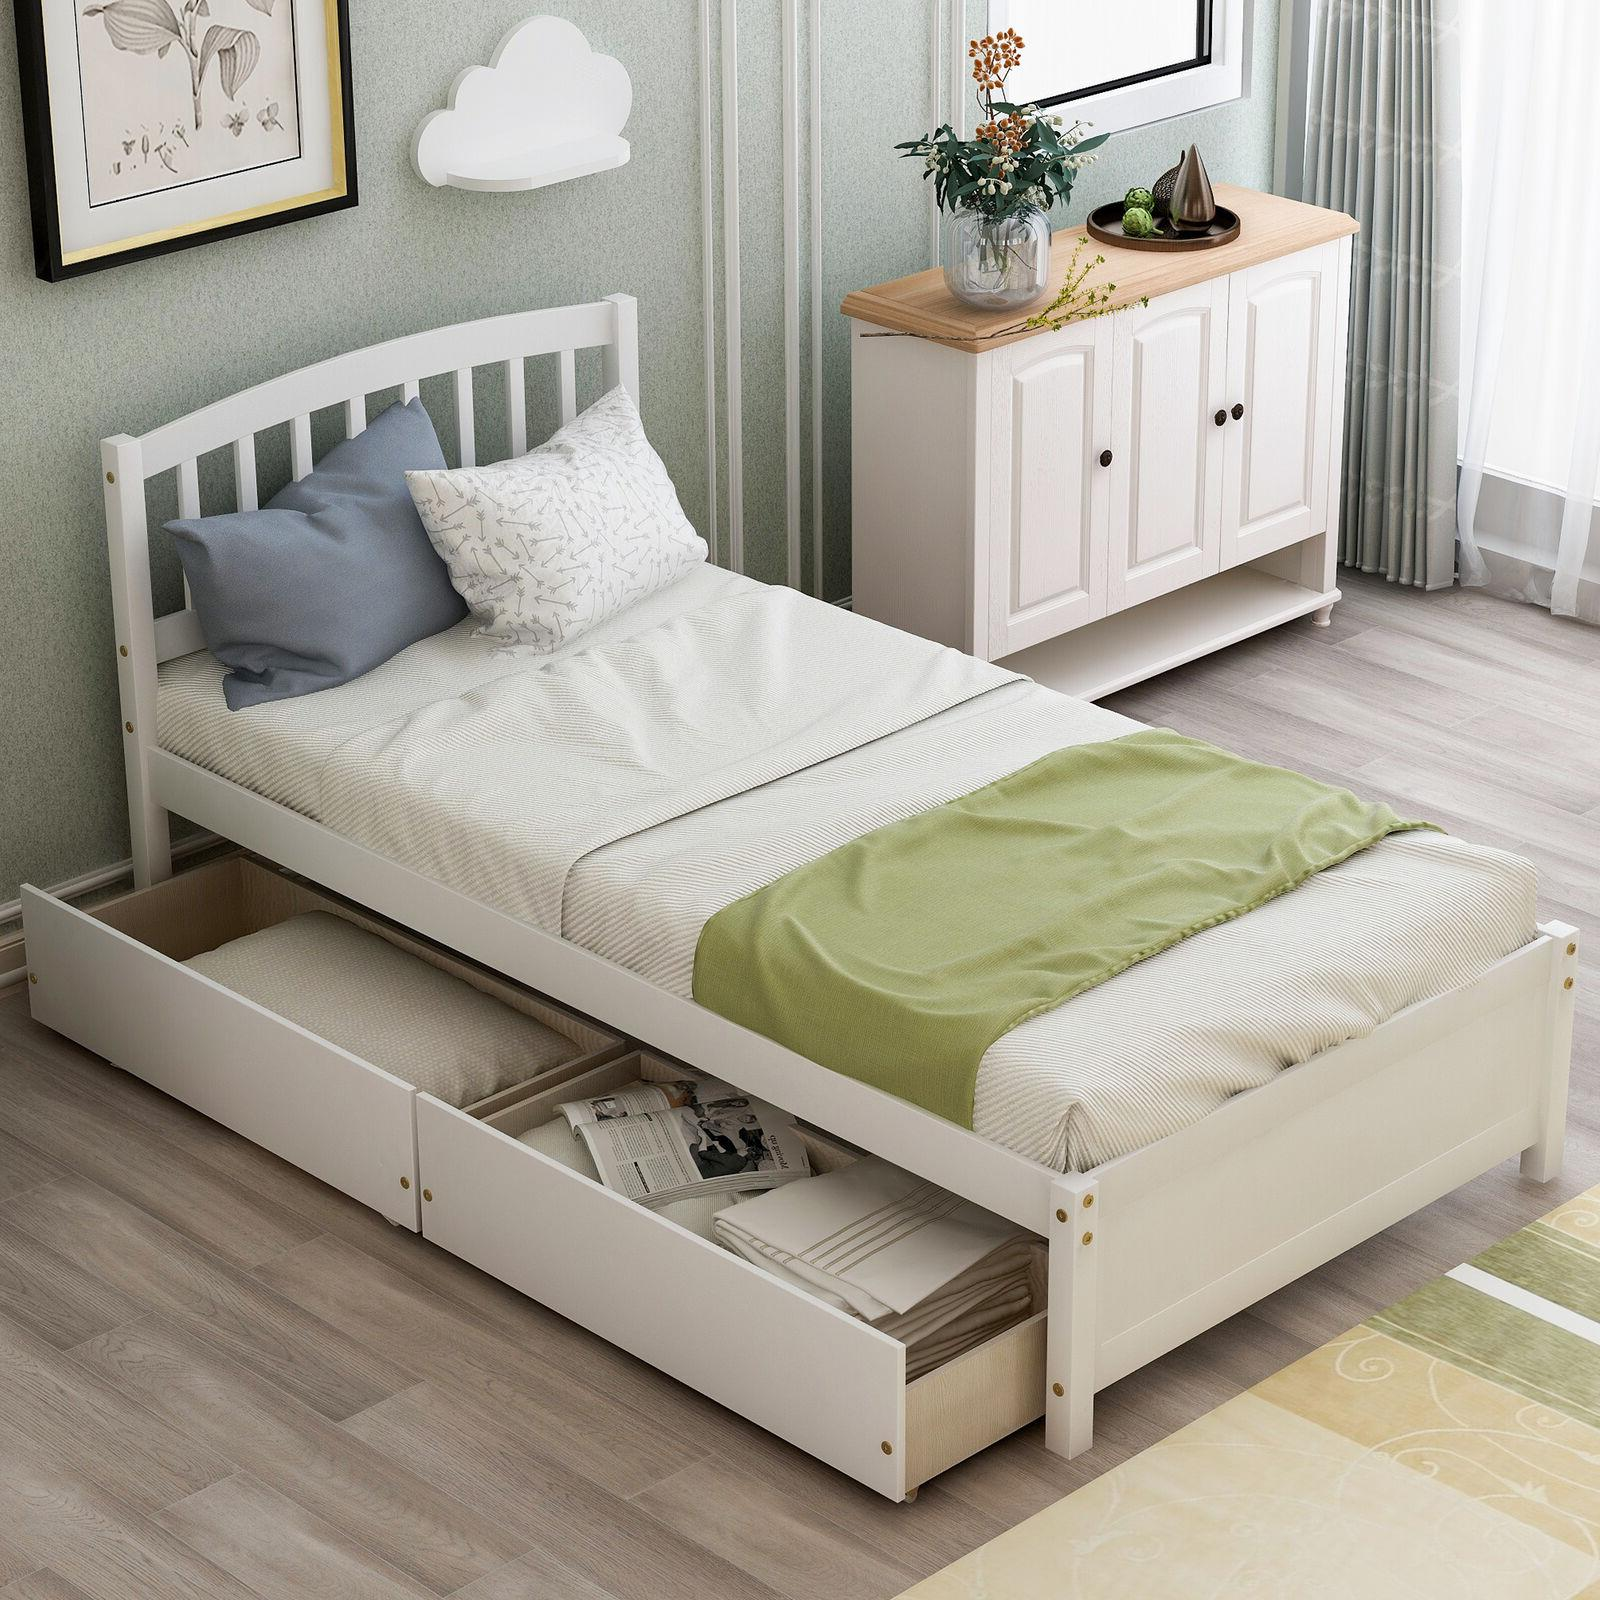 twin size bed frame w trundle matress